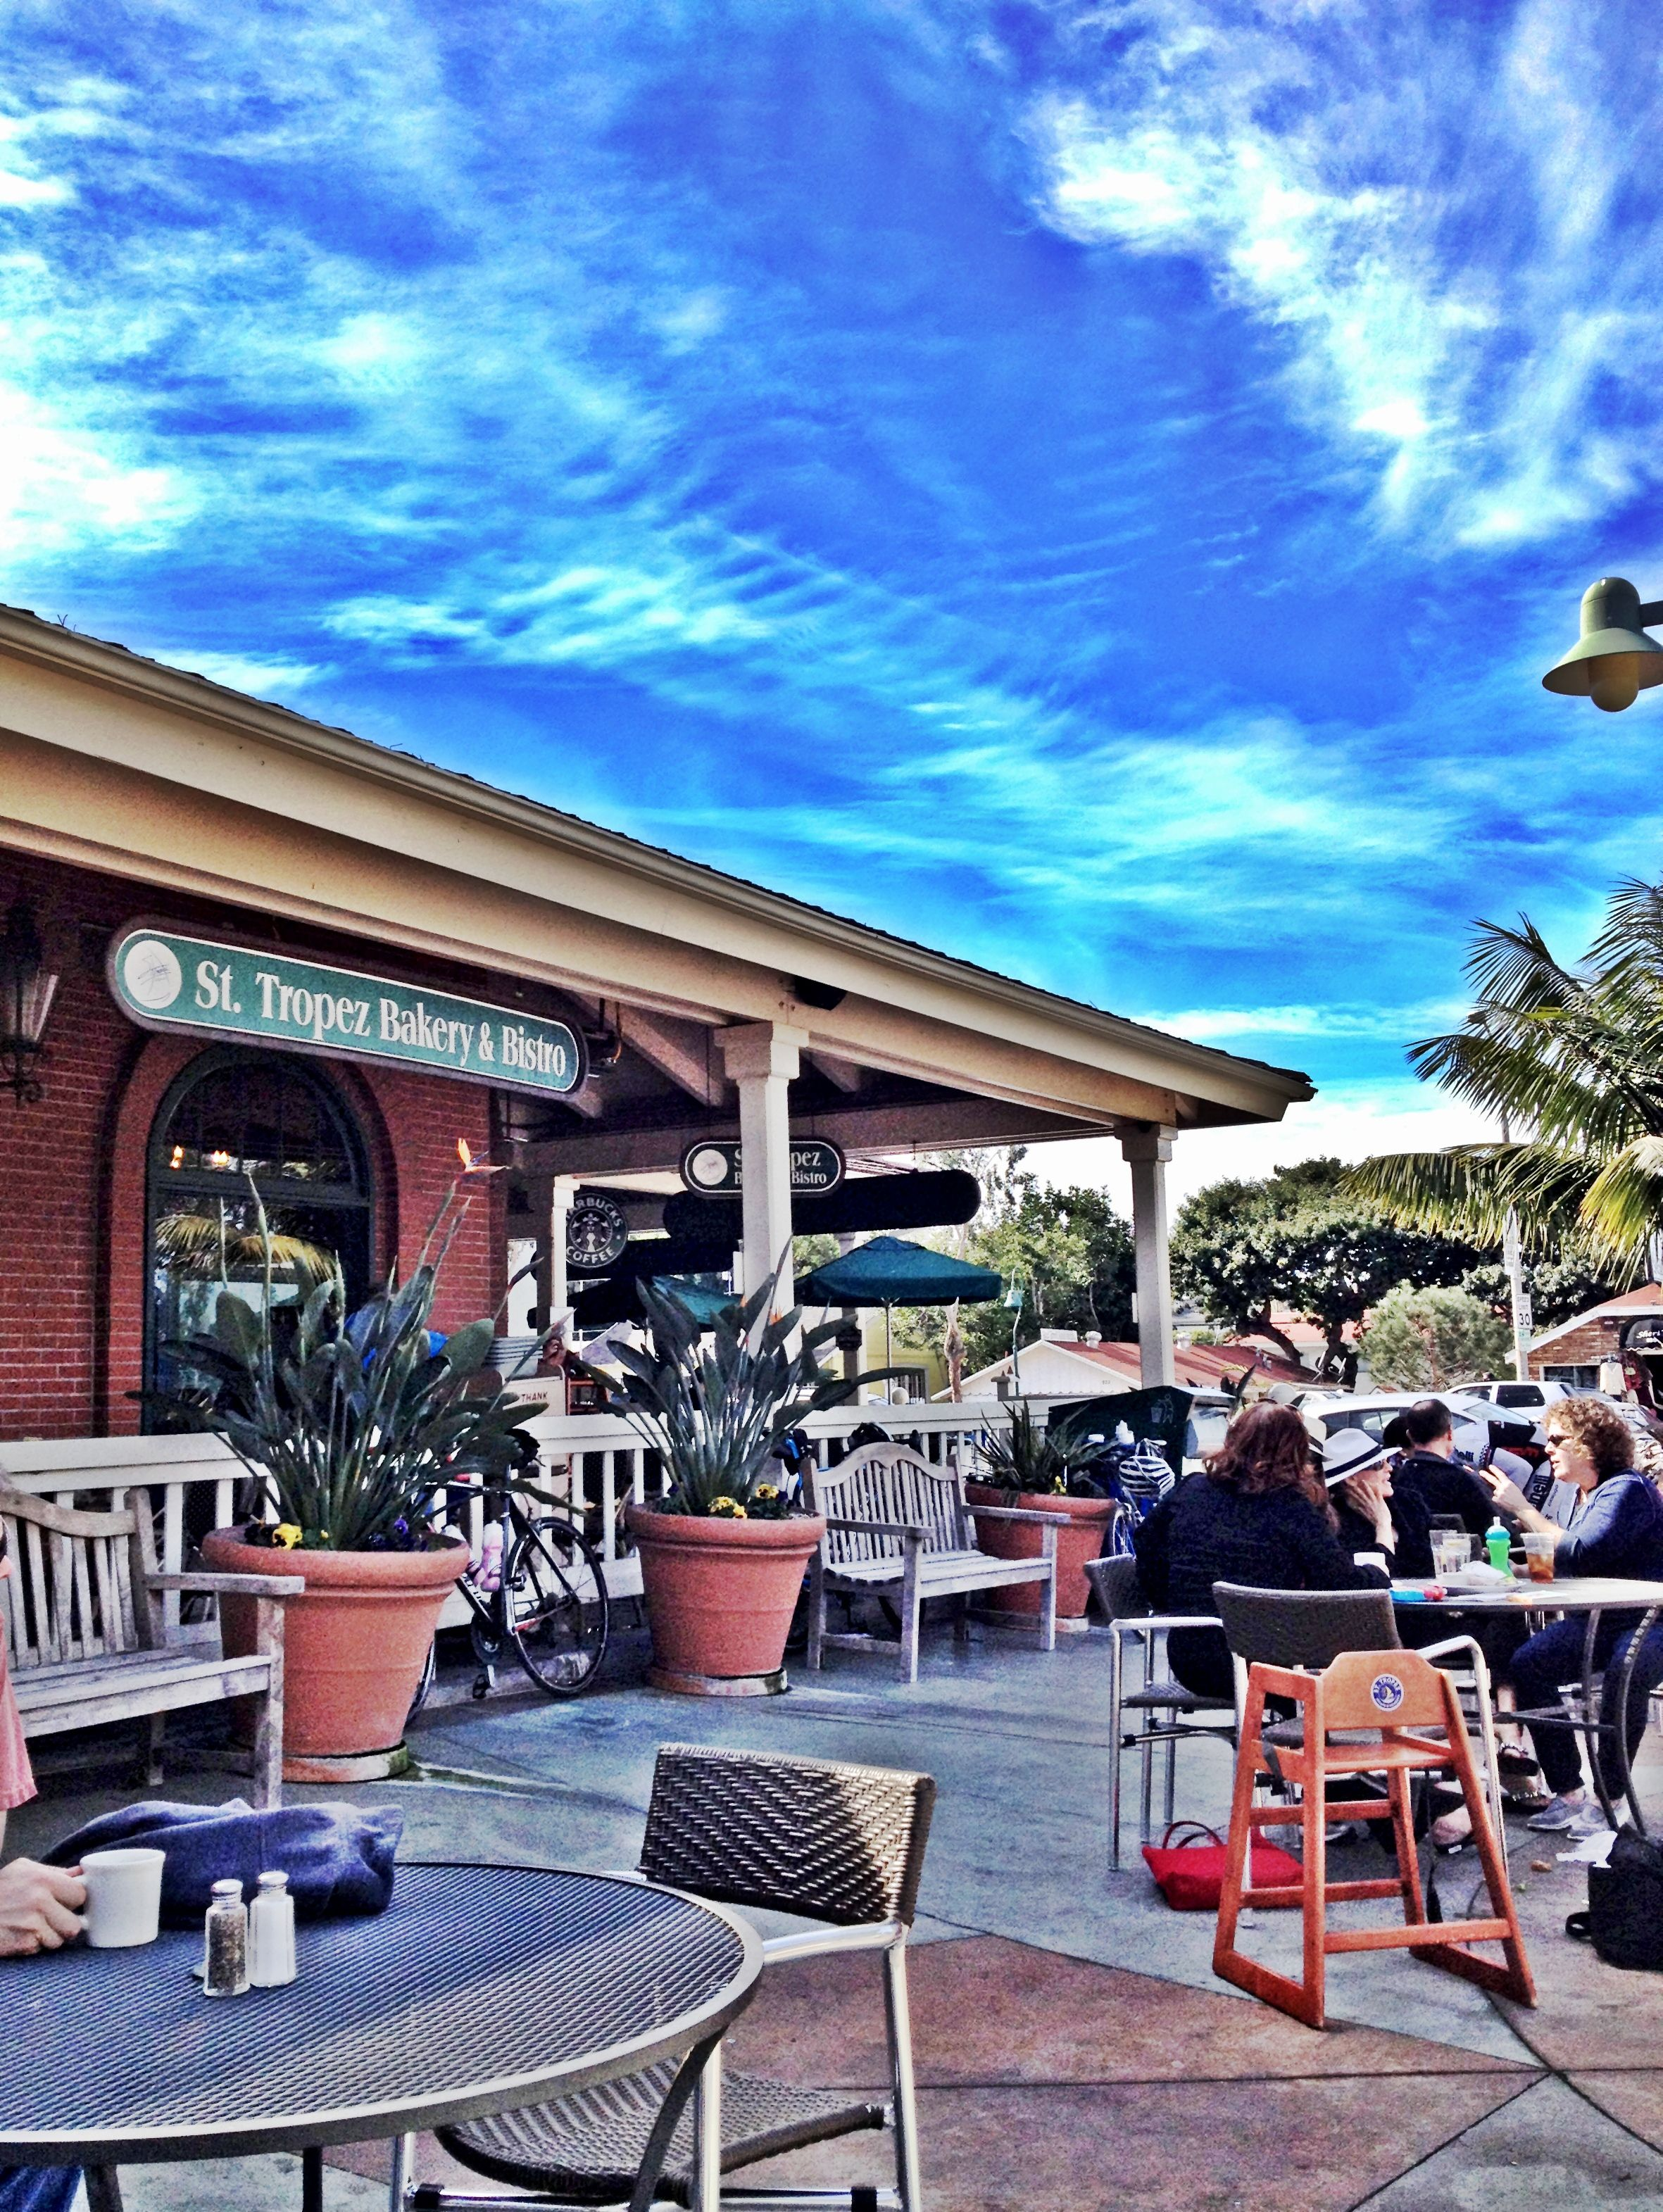 Bakery U0026 Bistro  Encinitas California. Best Place For A Big Breakfast With  The Fam